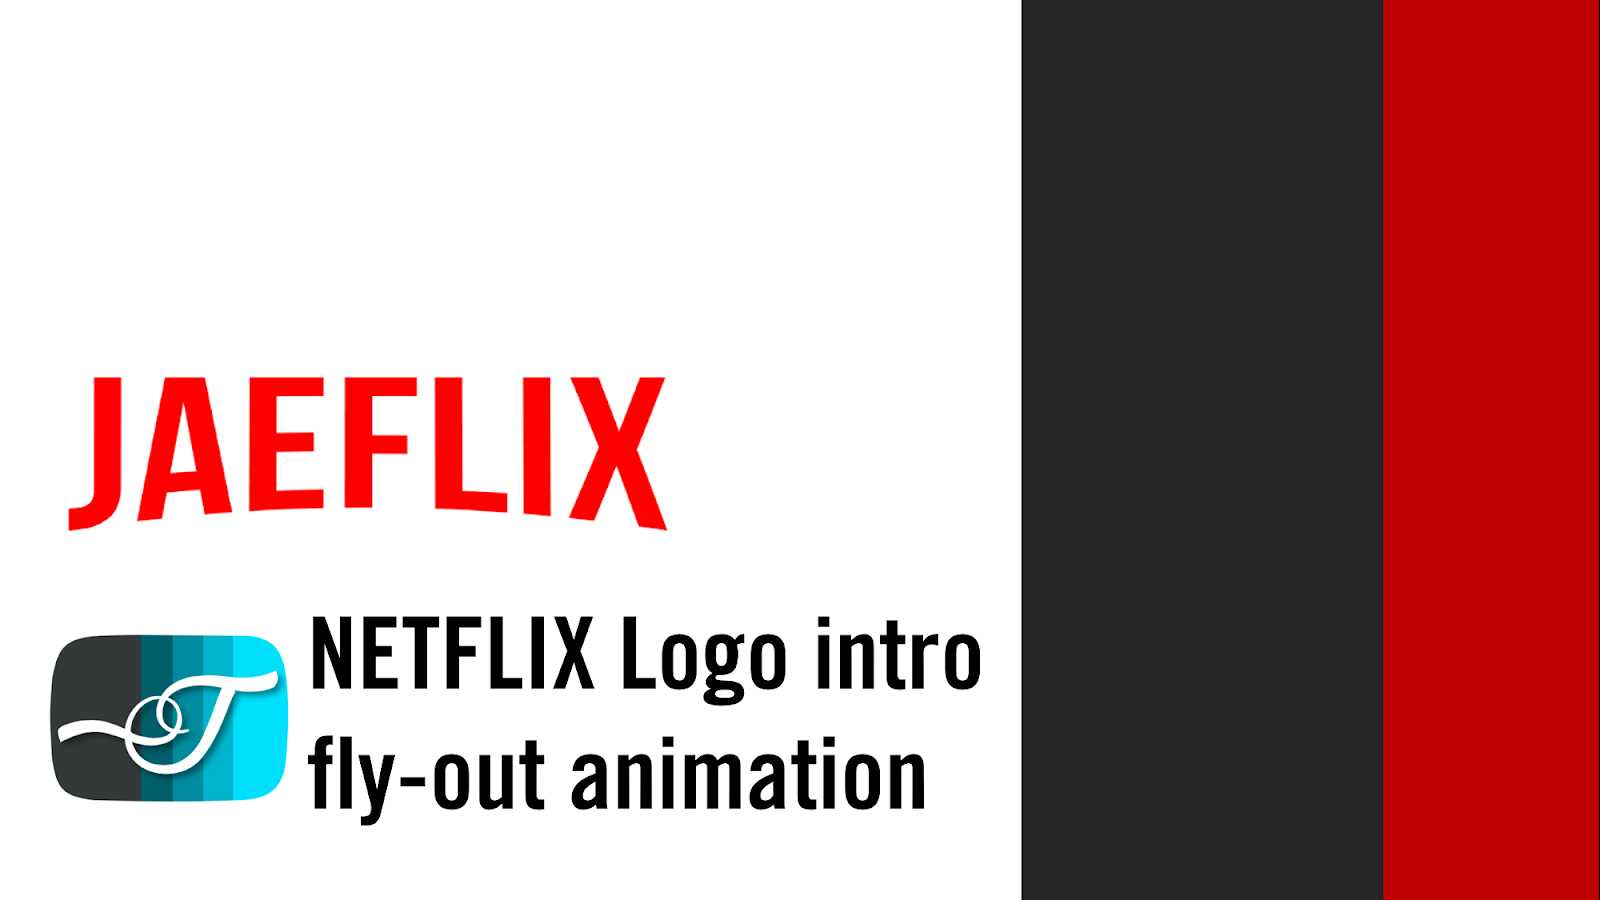 Netflix Logo Effect Fly-out Intro Using PowerPoint Animation Motion